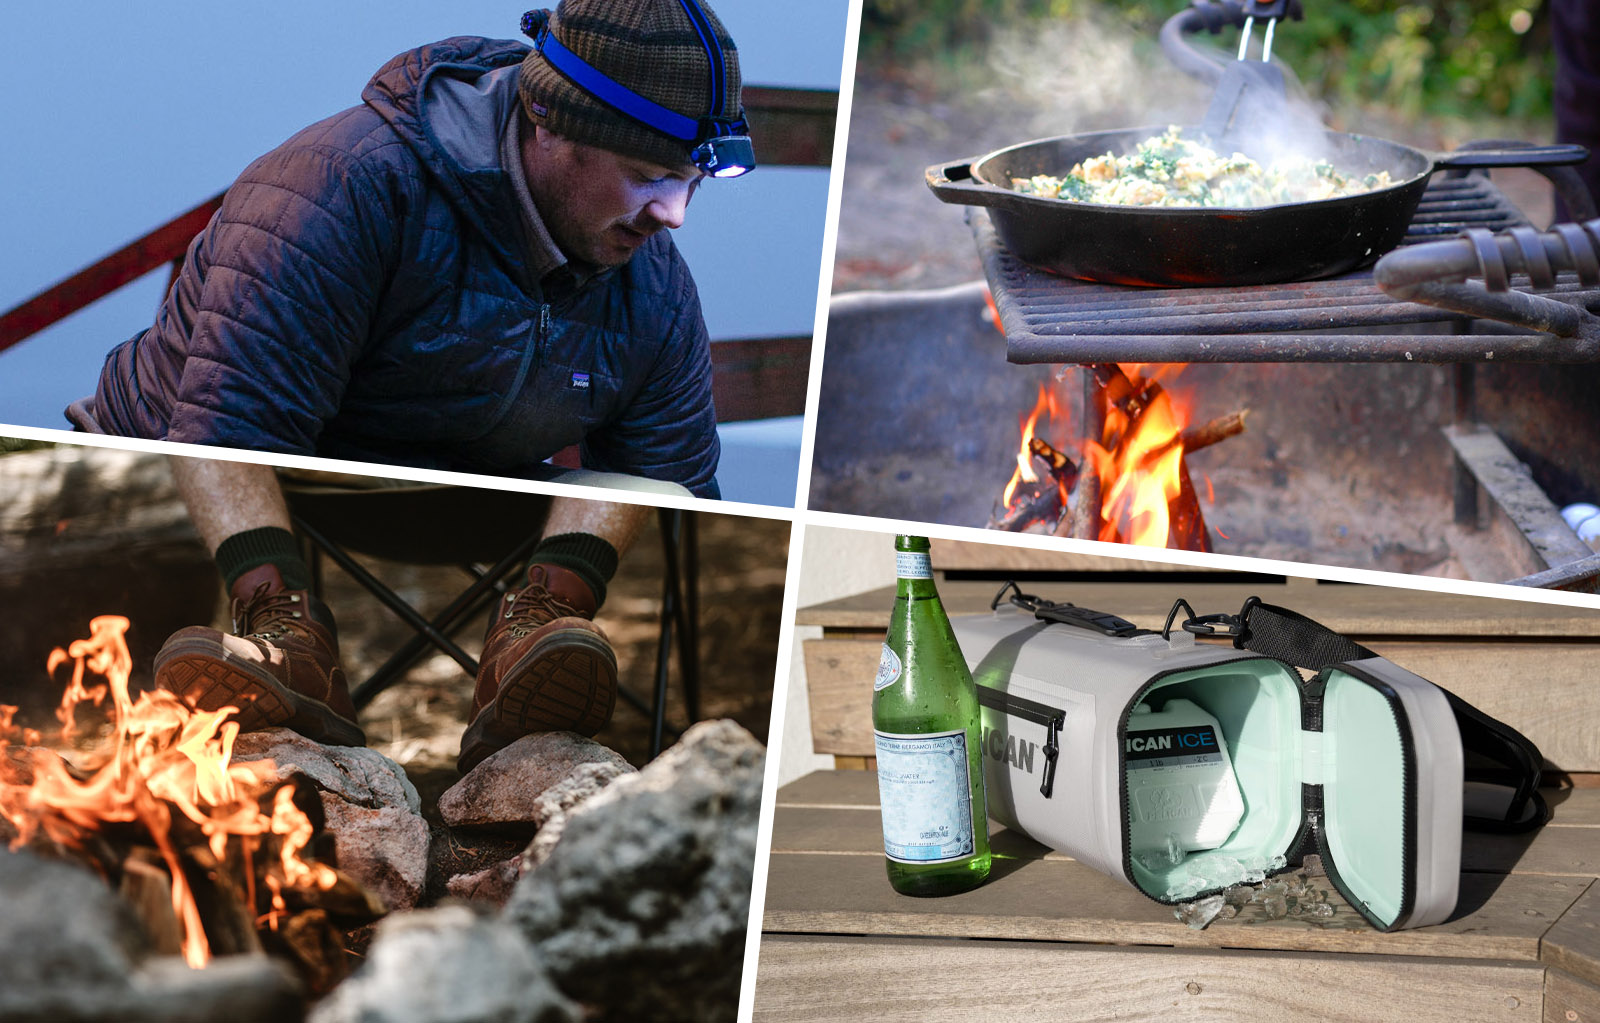 pelican consumer blog cooking on a campfire